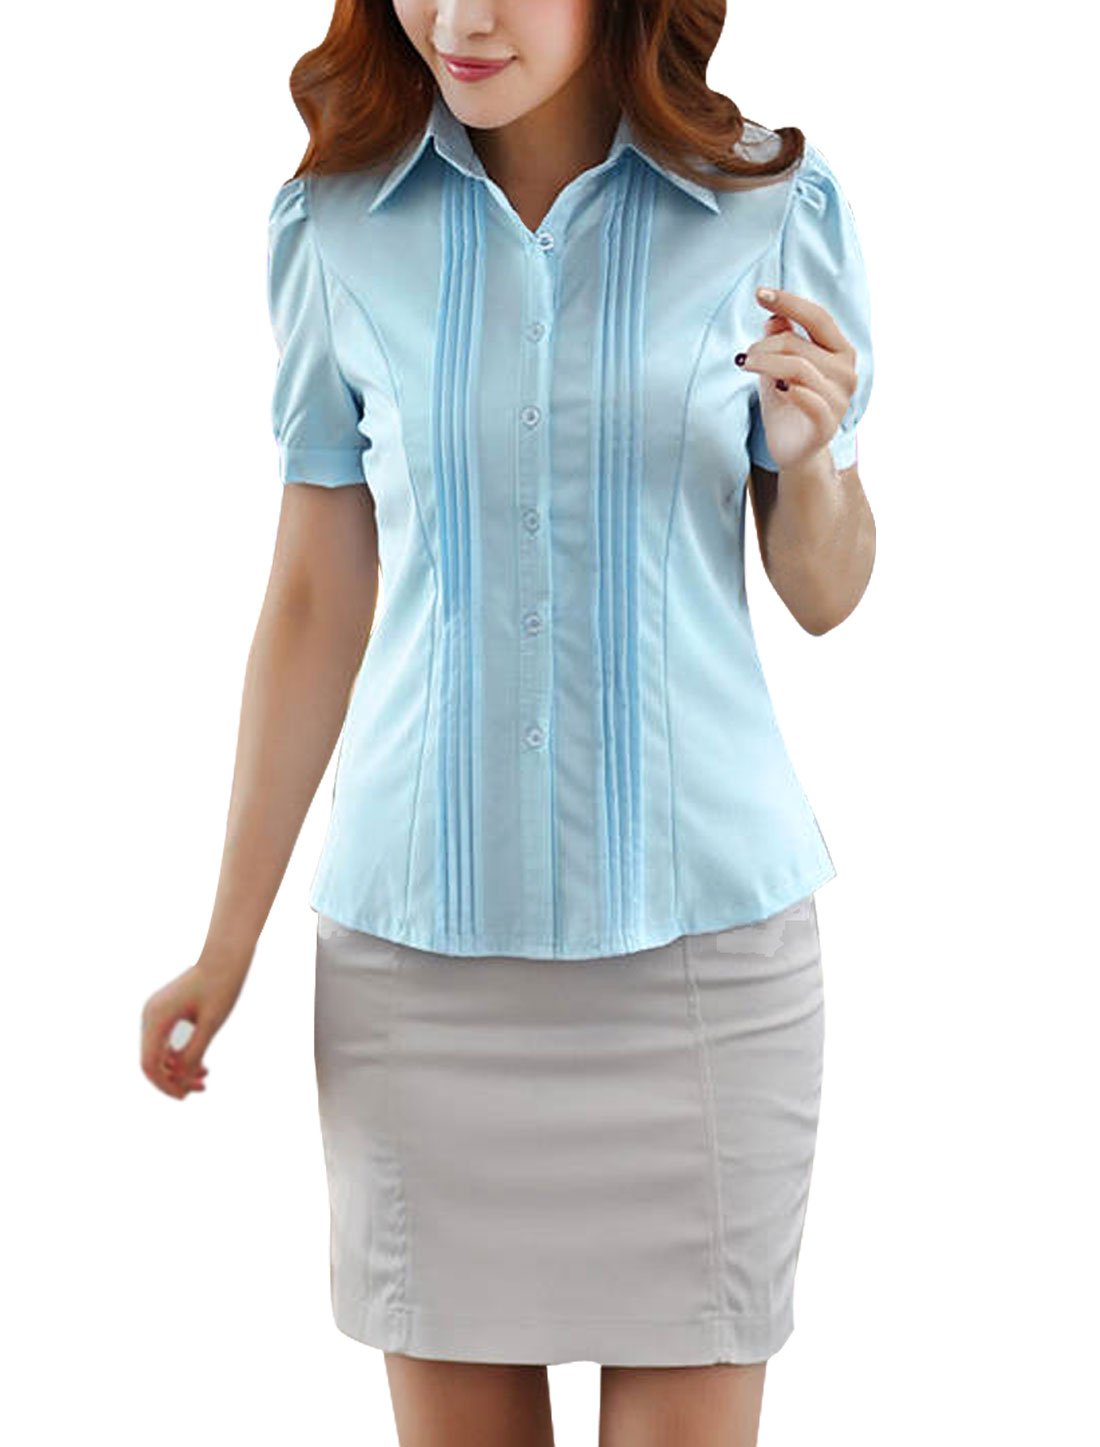 M Blue Point Collar Skinny Fit Design Solid Color Button Front Women Shirt